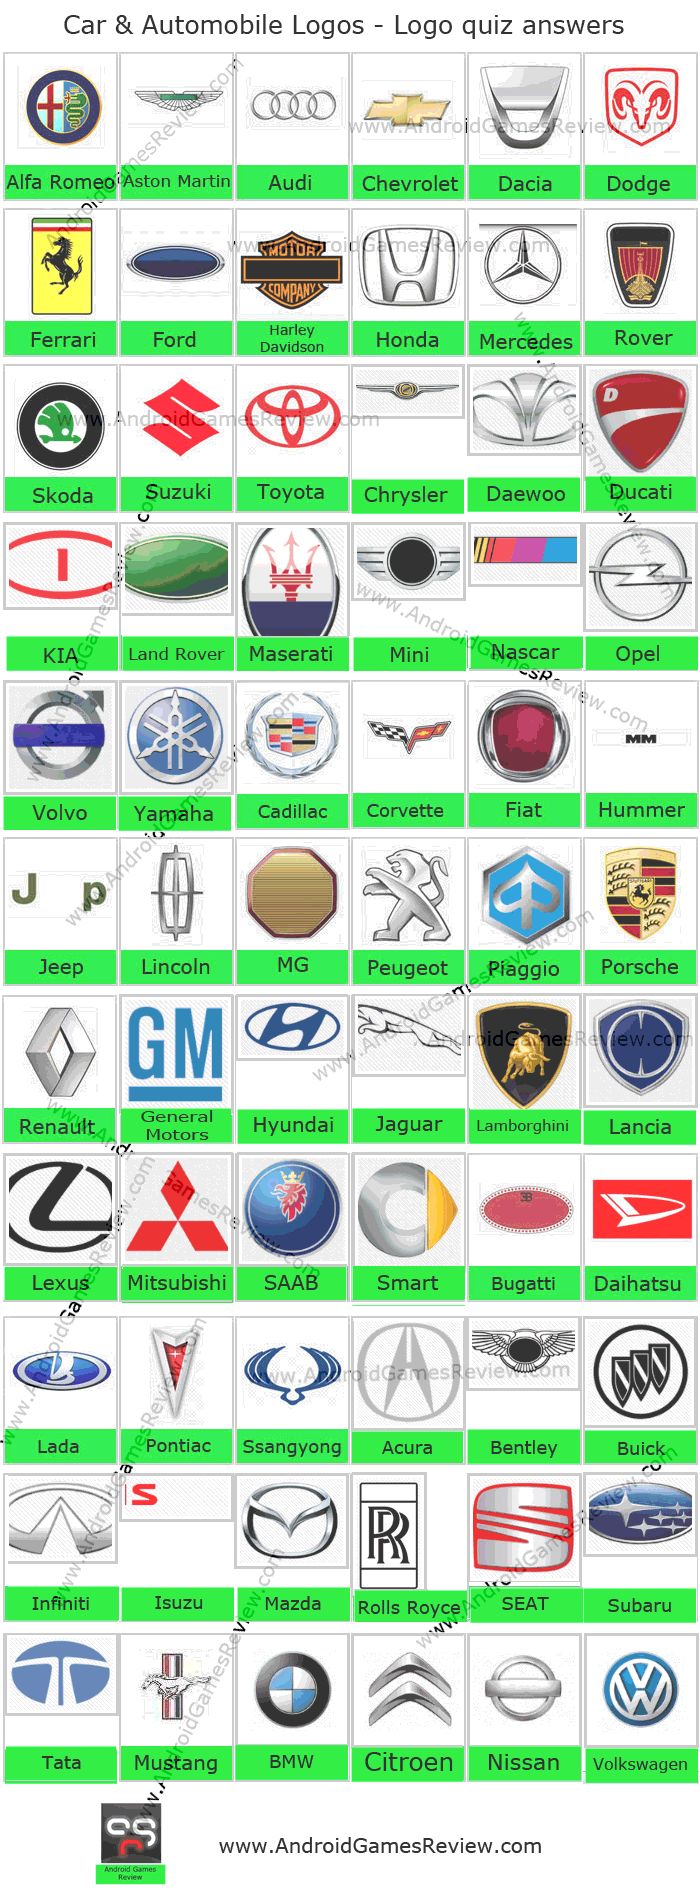 logos, designer logos or airline logos and their answers then look no